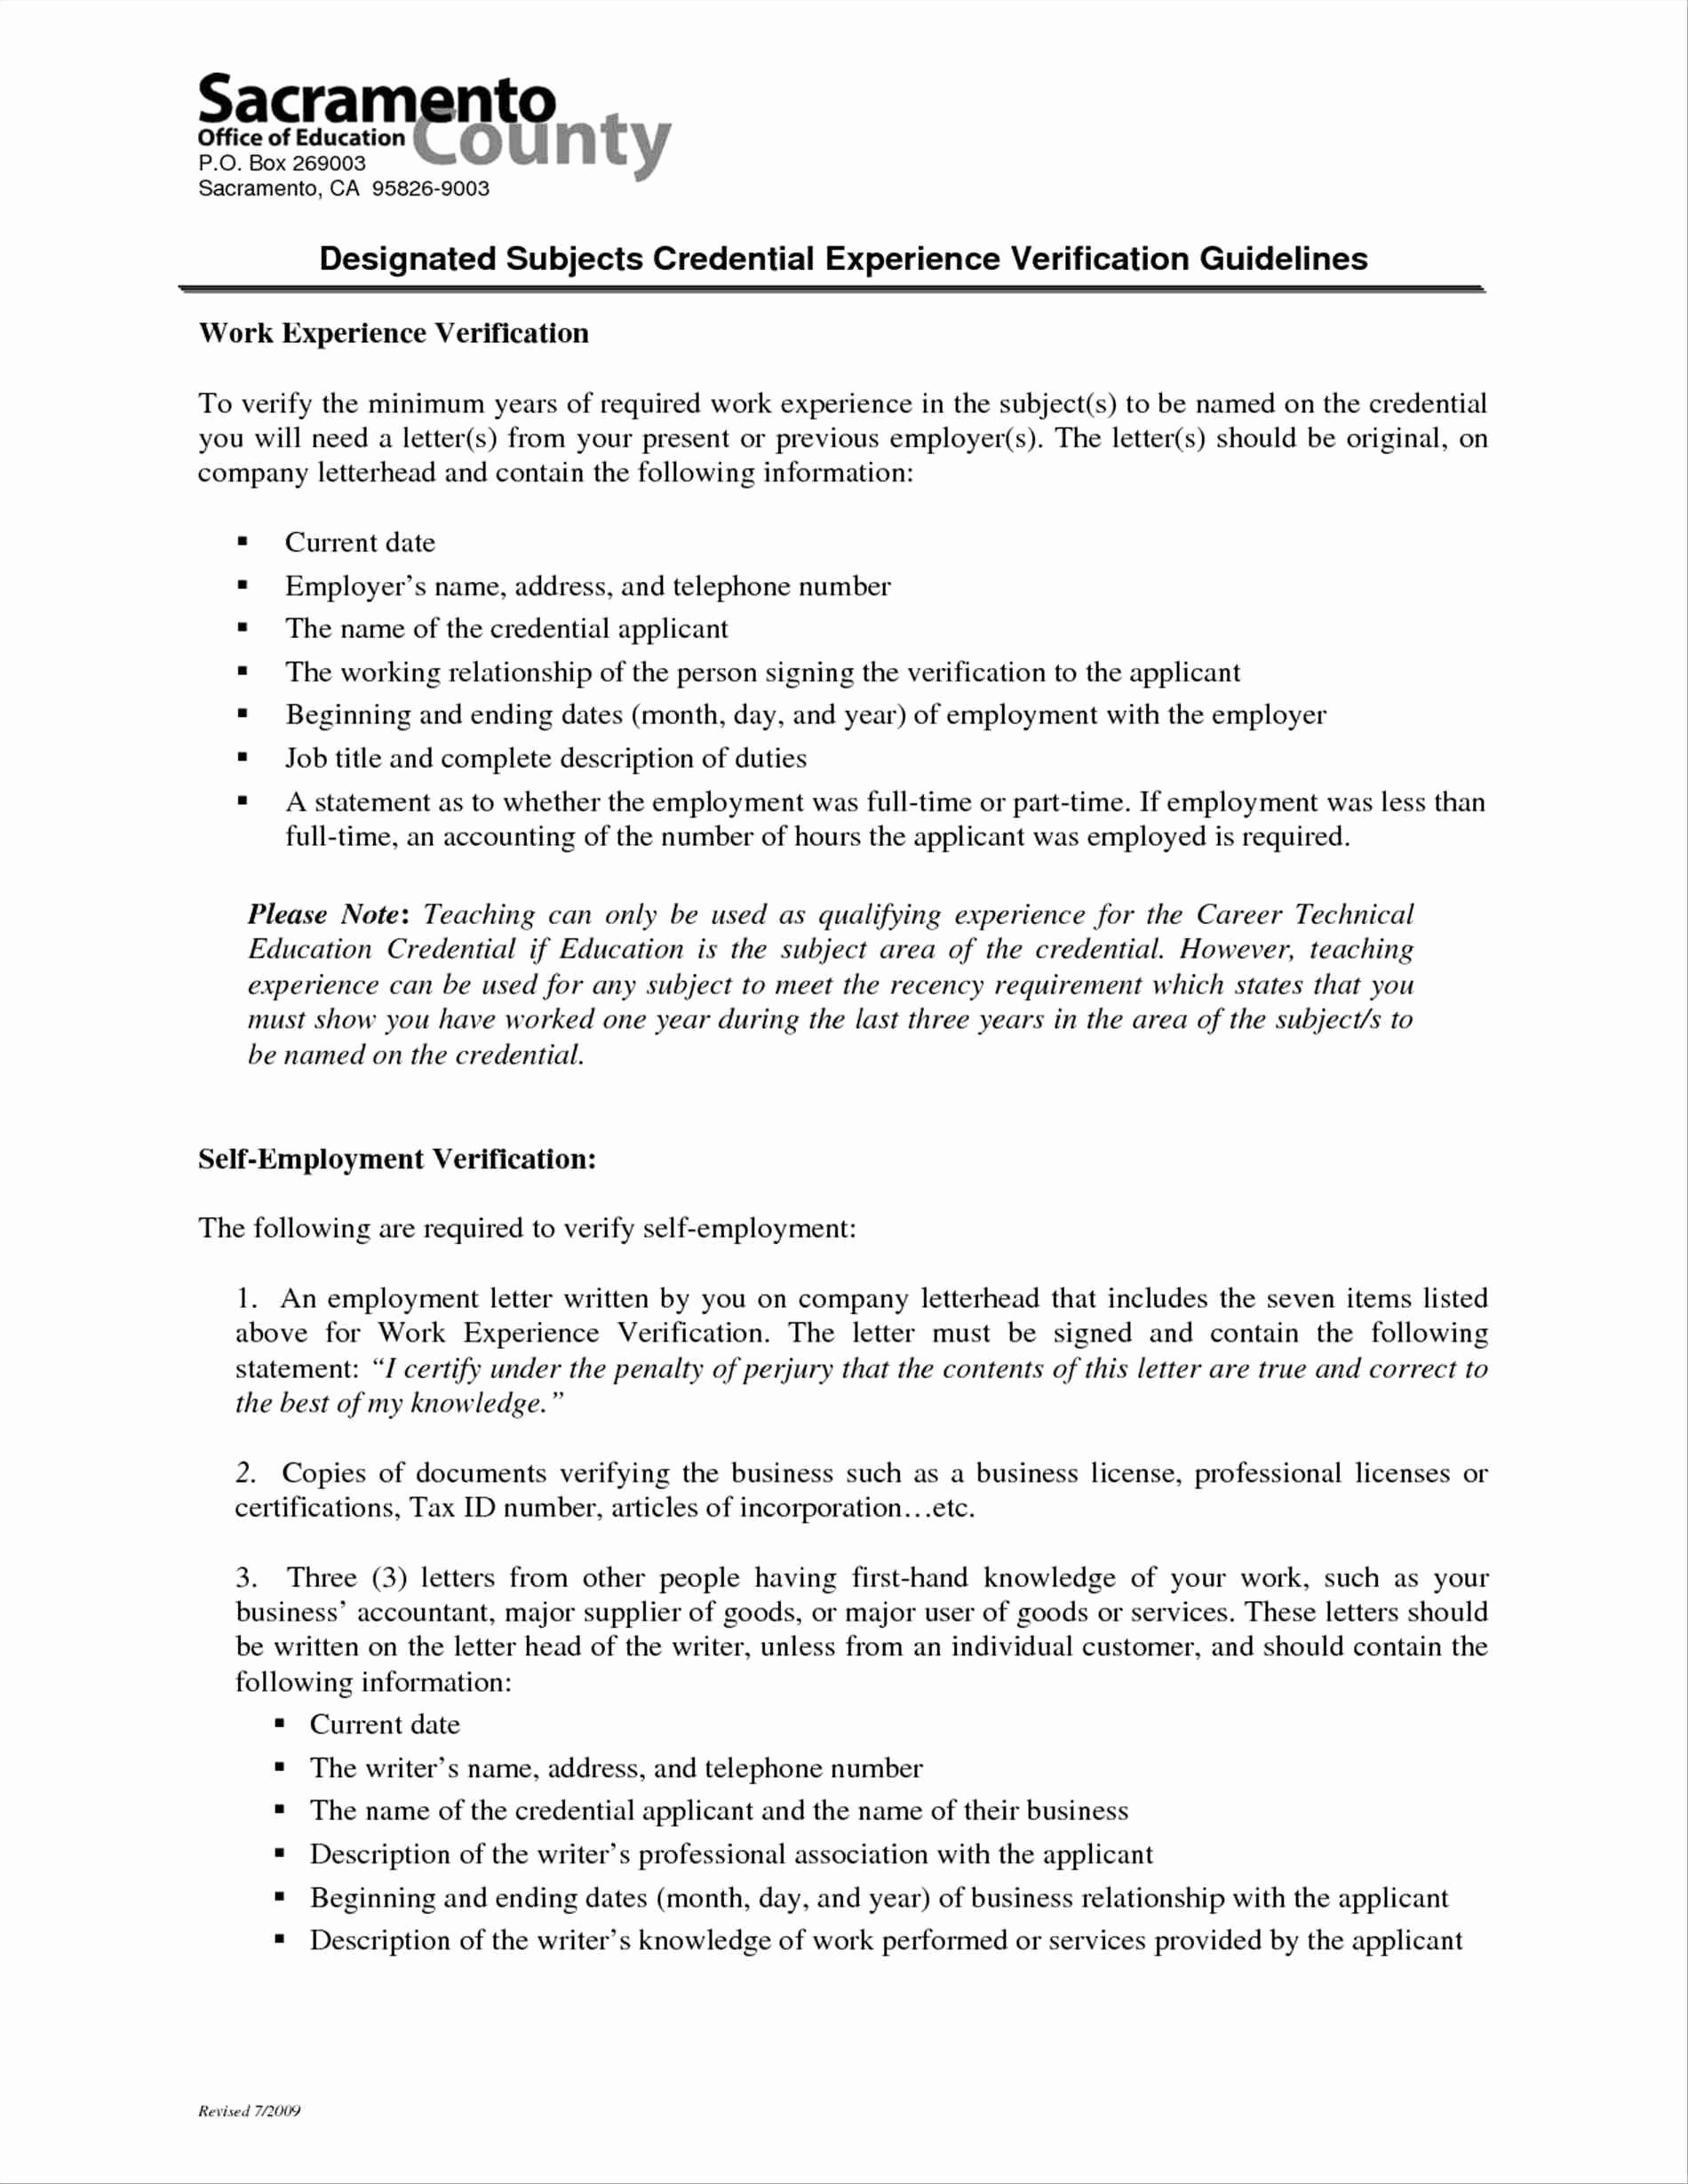 Self Employment Letter Template New Self Employment Verification Letter Template Samples